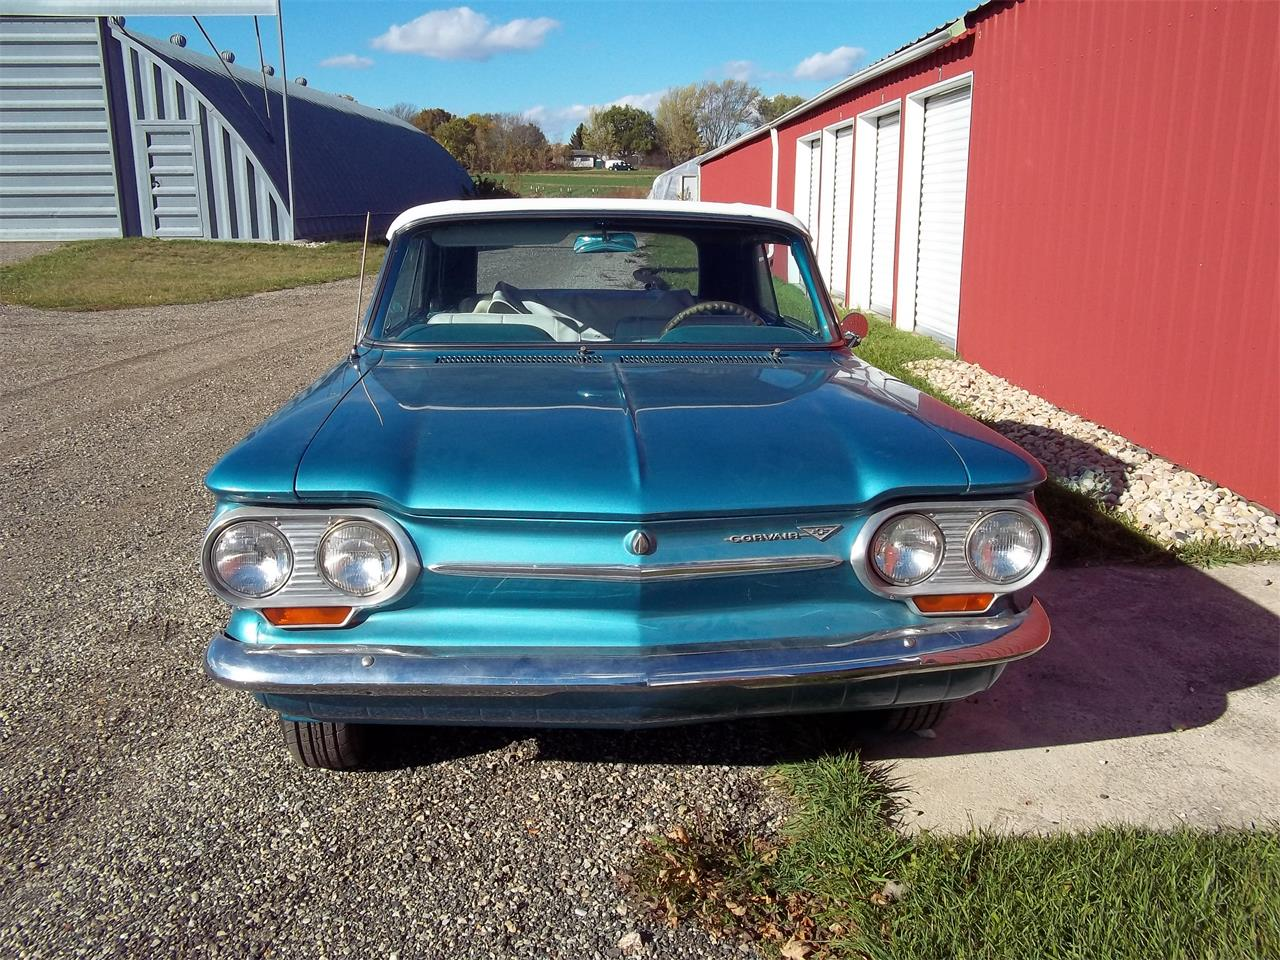 Large Picture of Classic '63 Chevrolet Corvair Monza - $8,500.00 Offered by a Private Seller - L2P4